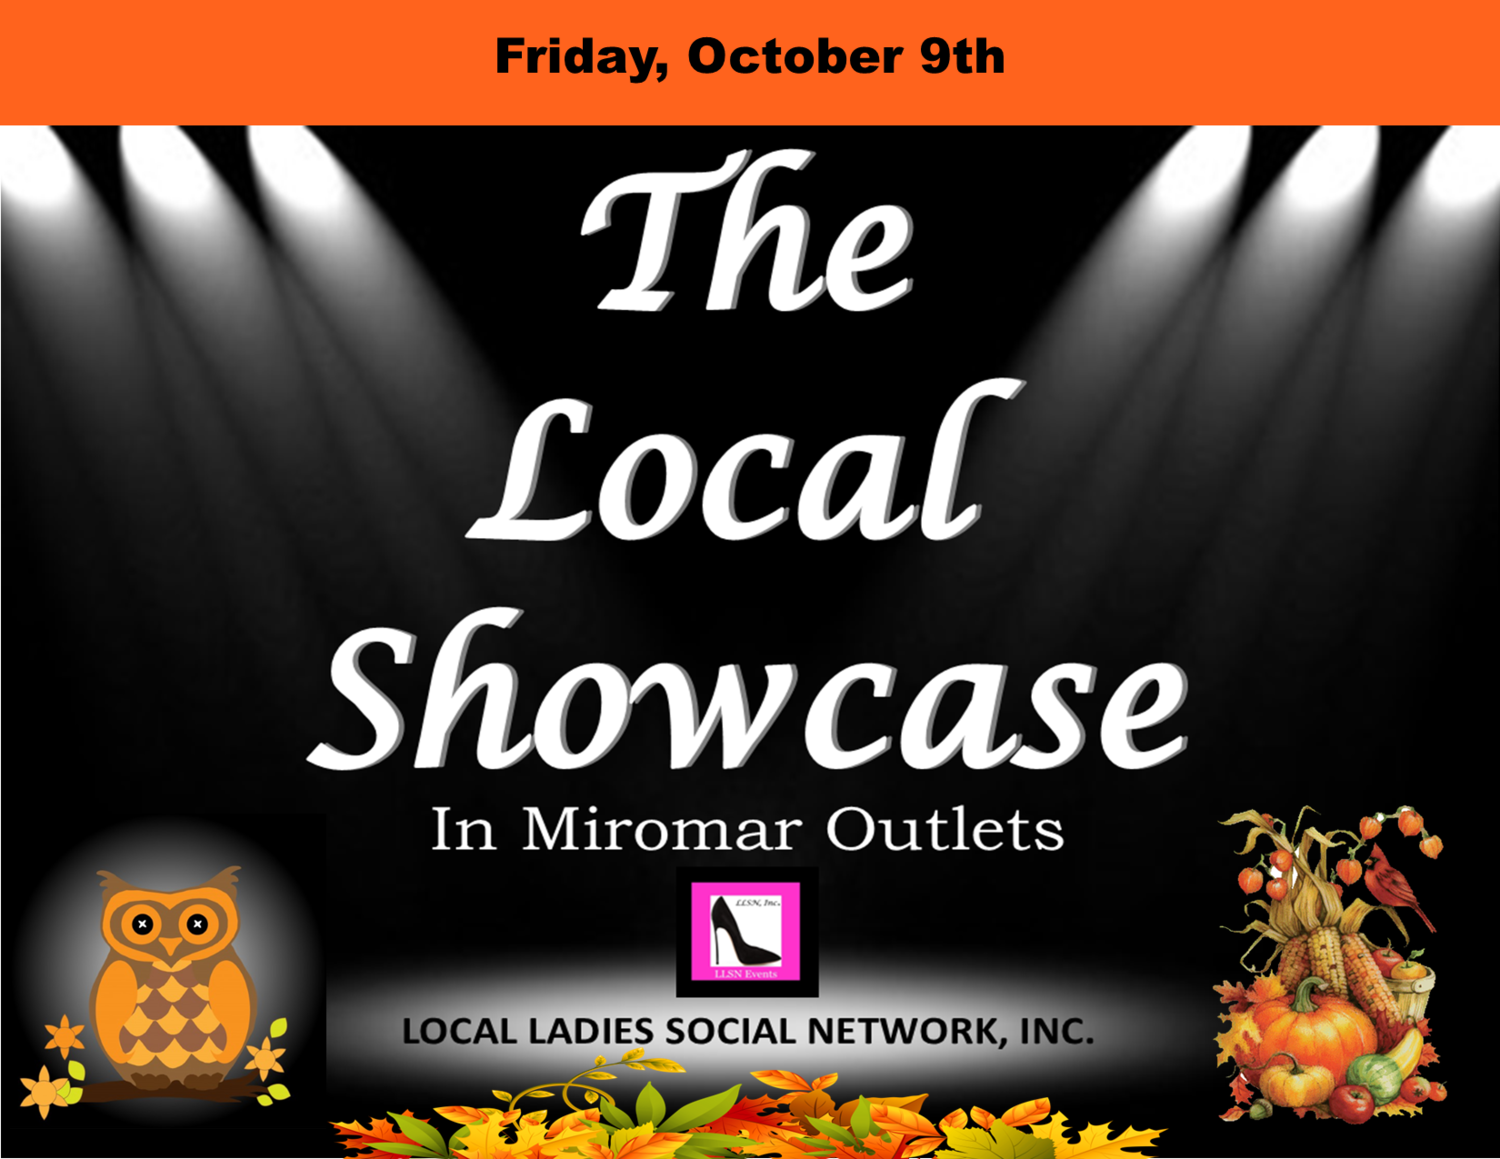 Friday, October 9th 11am-7pm